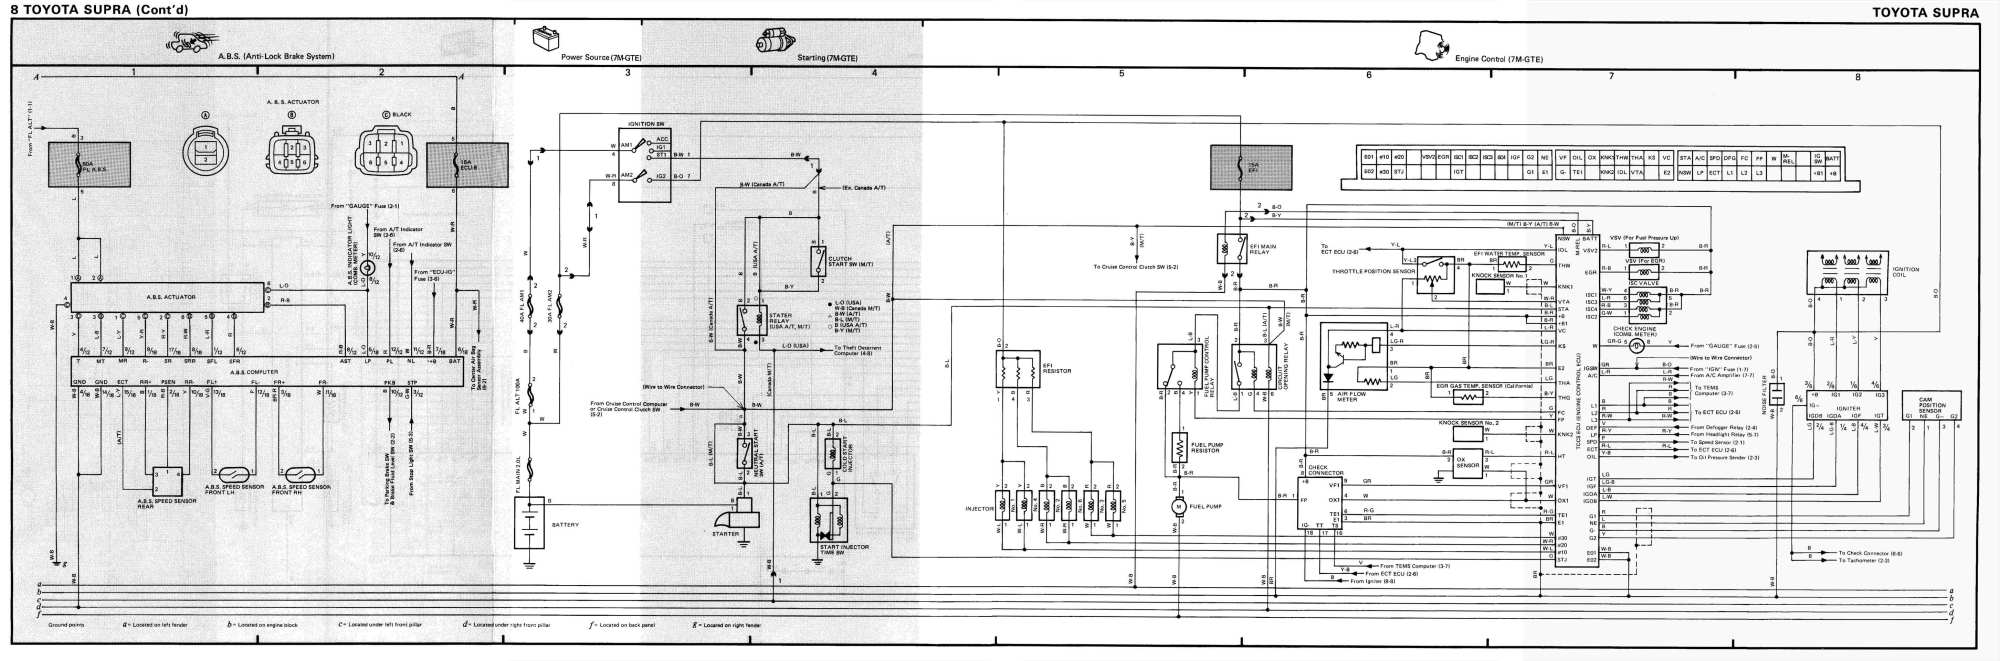 hight resolution of toyota 7m engine toyota circuit diagrams new wiring diagram toyota sel engine swap toyota circuit diagrams